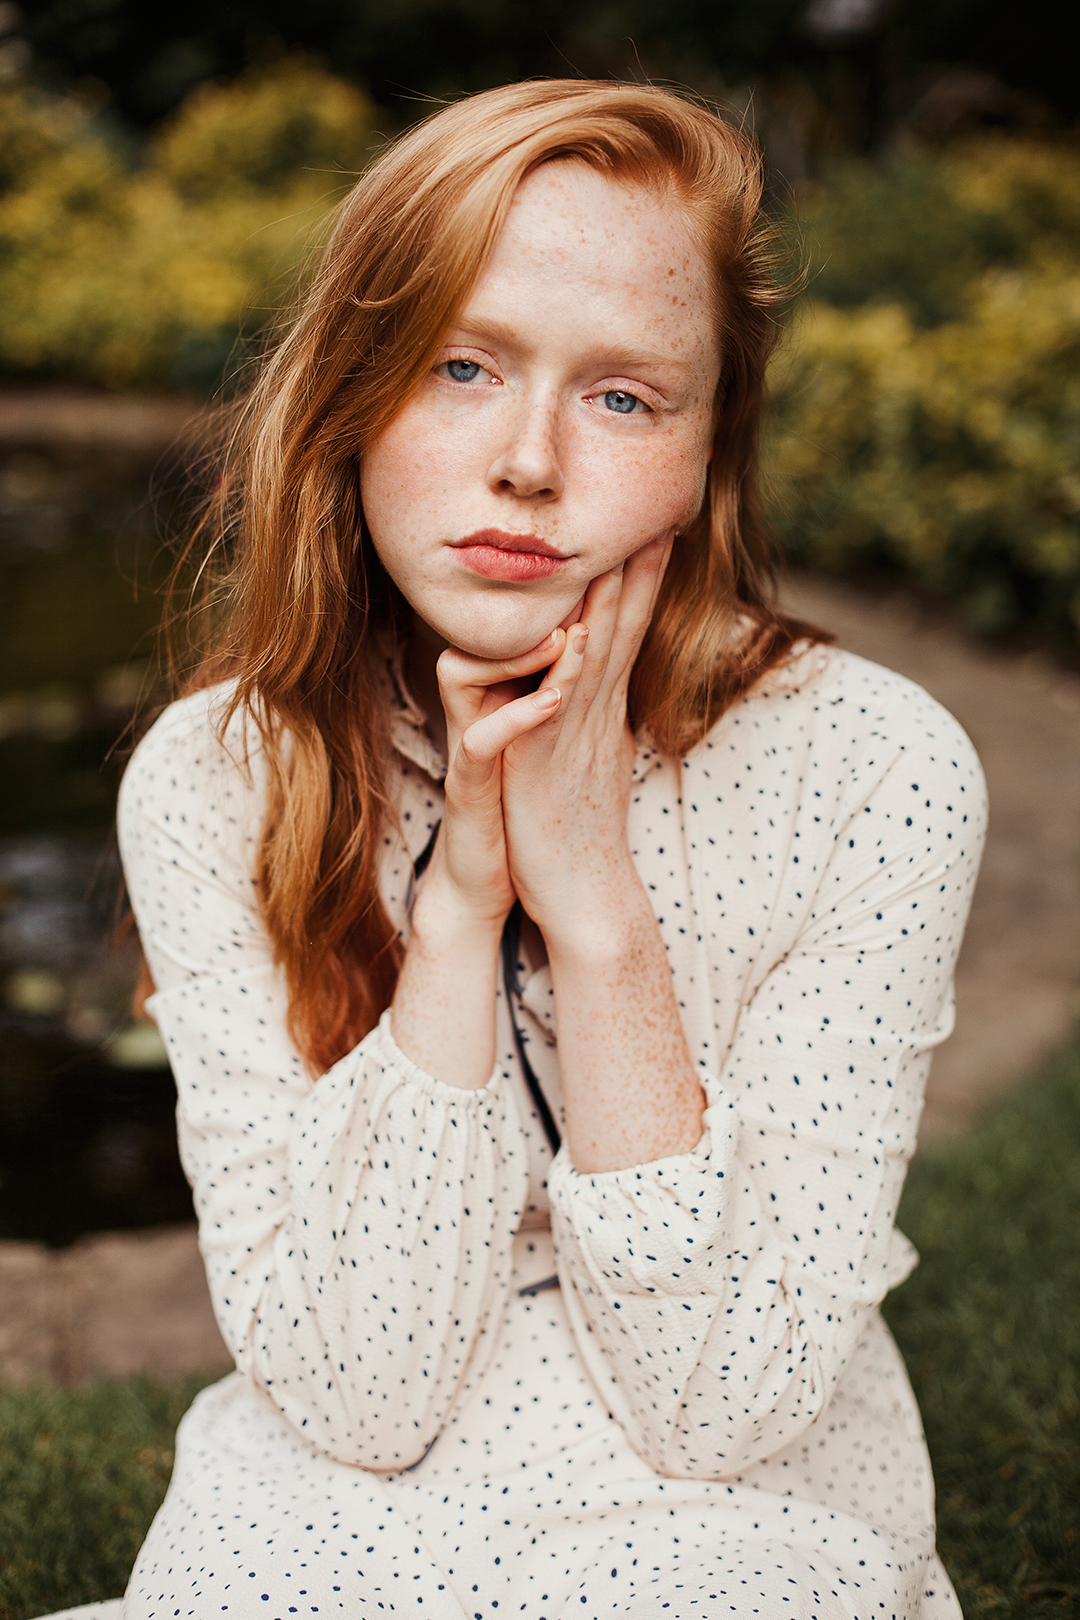 Freckled portrait of Holly Rebecca White by Ailera Stone